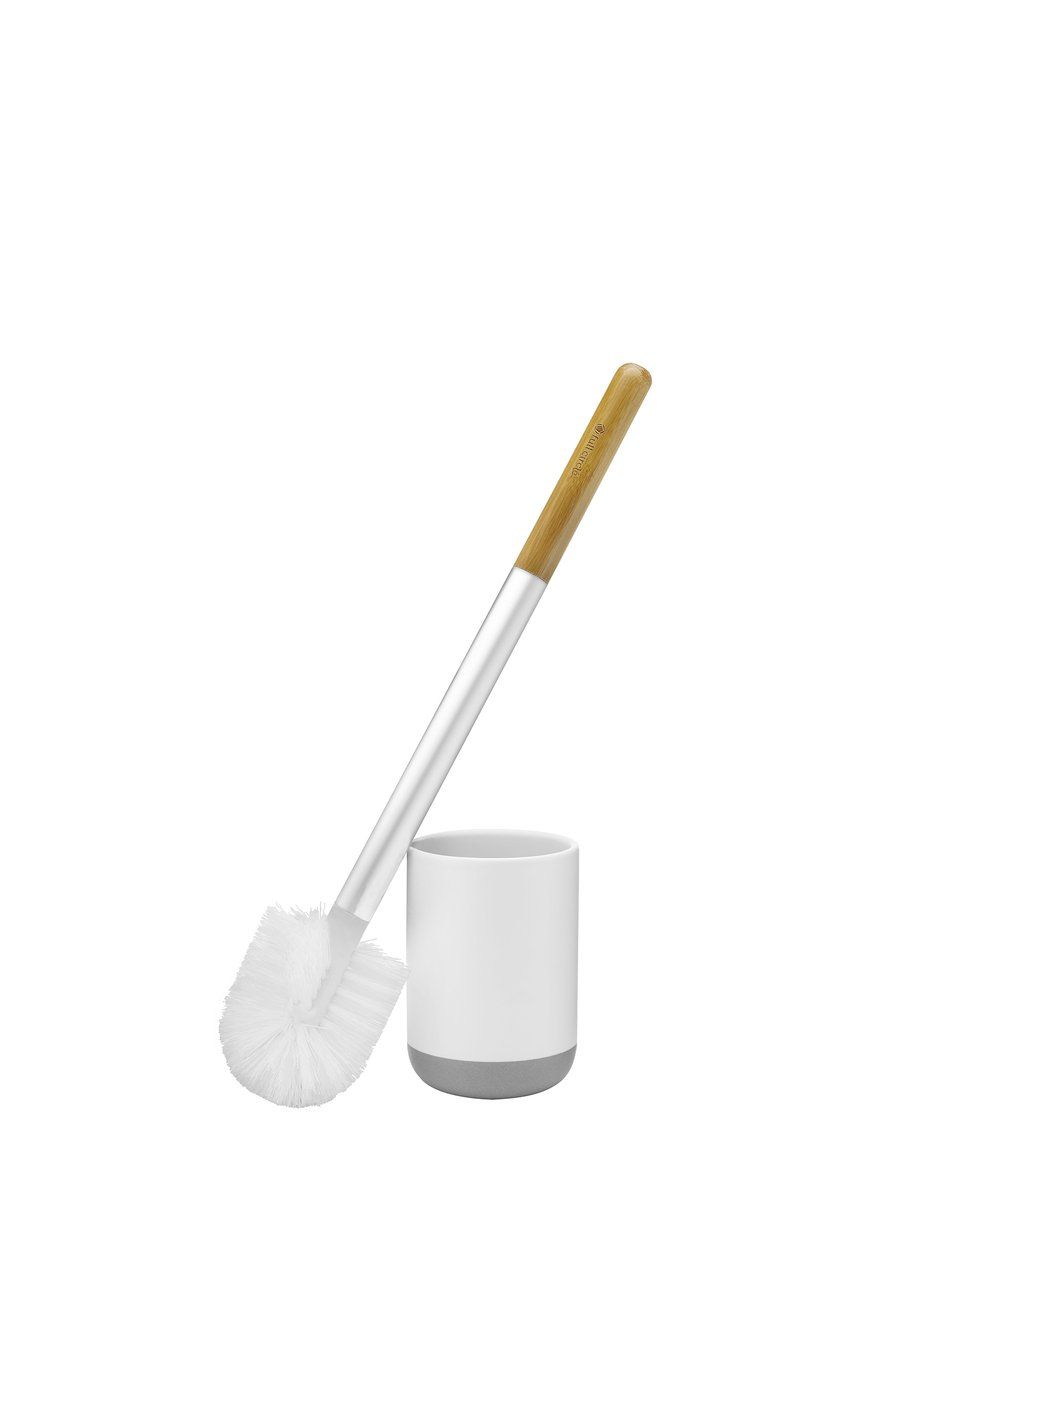 Silicone Toilet Brush With Holder Set Plastic Toilet Bowl Brush Wall Mounted Or Floor Standing Bathroom Toilet Cleaning Brush In 2020 Toilet Brush Modern Toilet Brush Toilet Bowl Brush